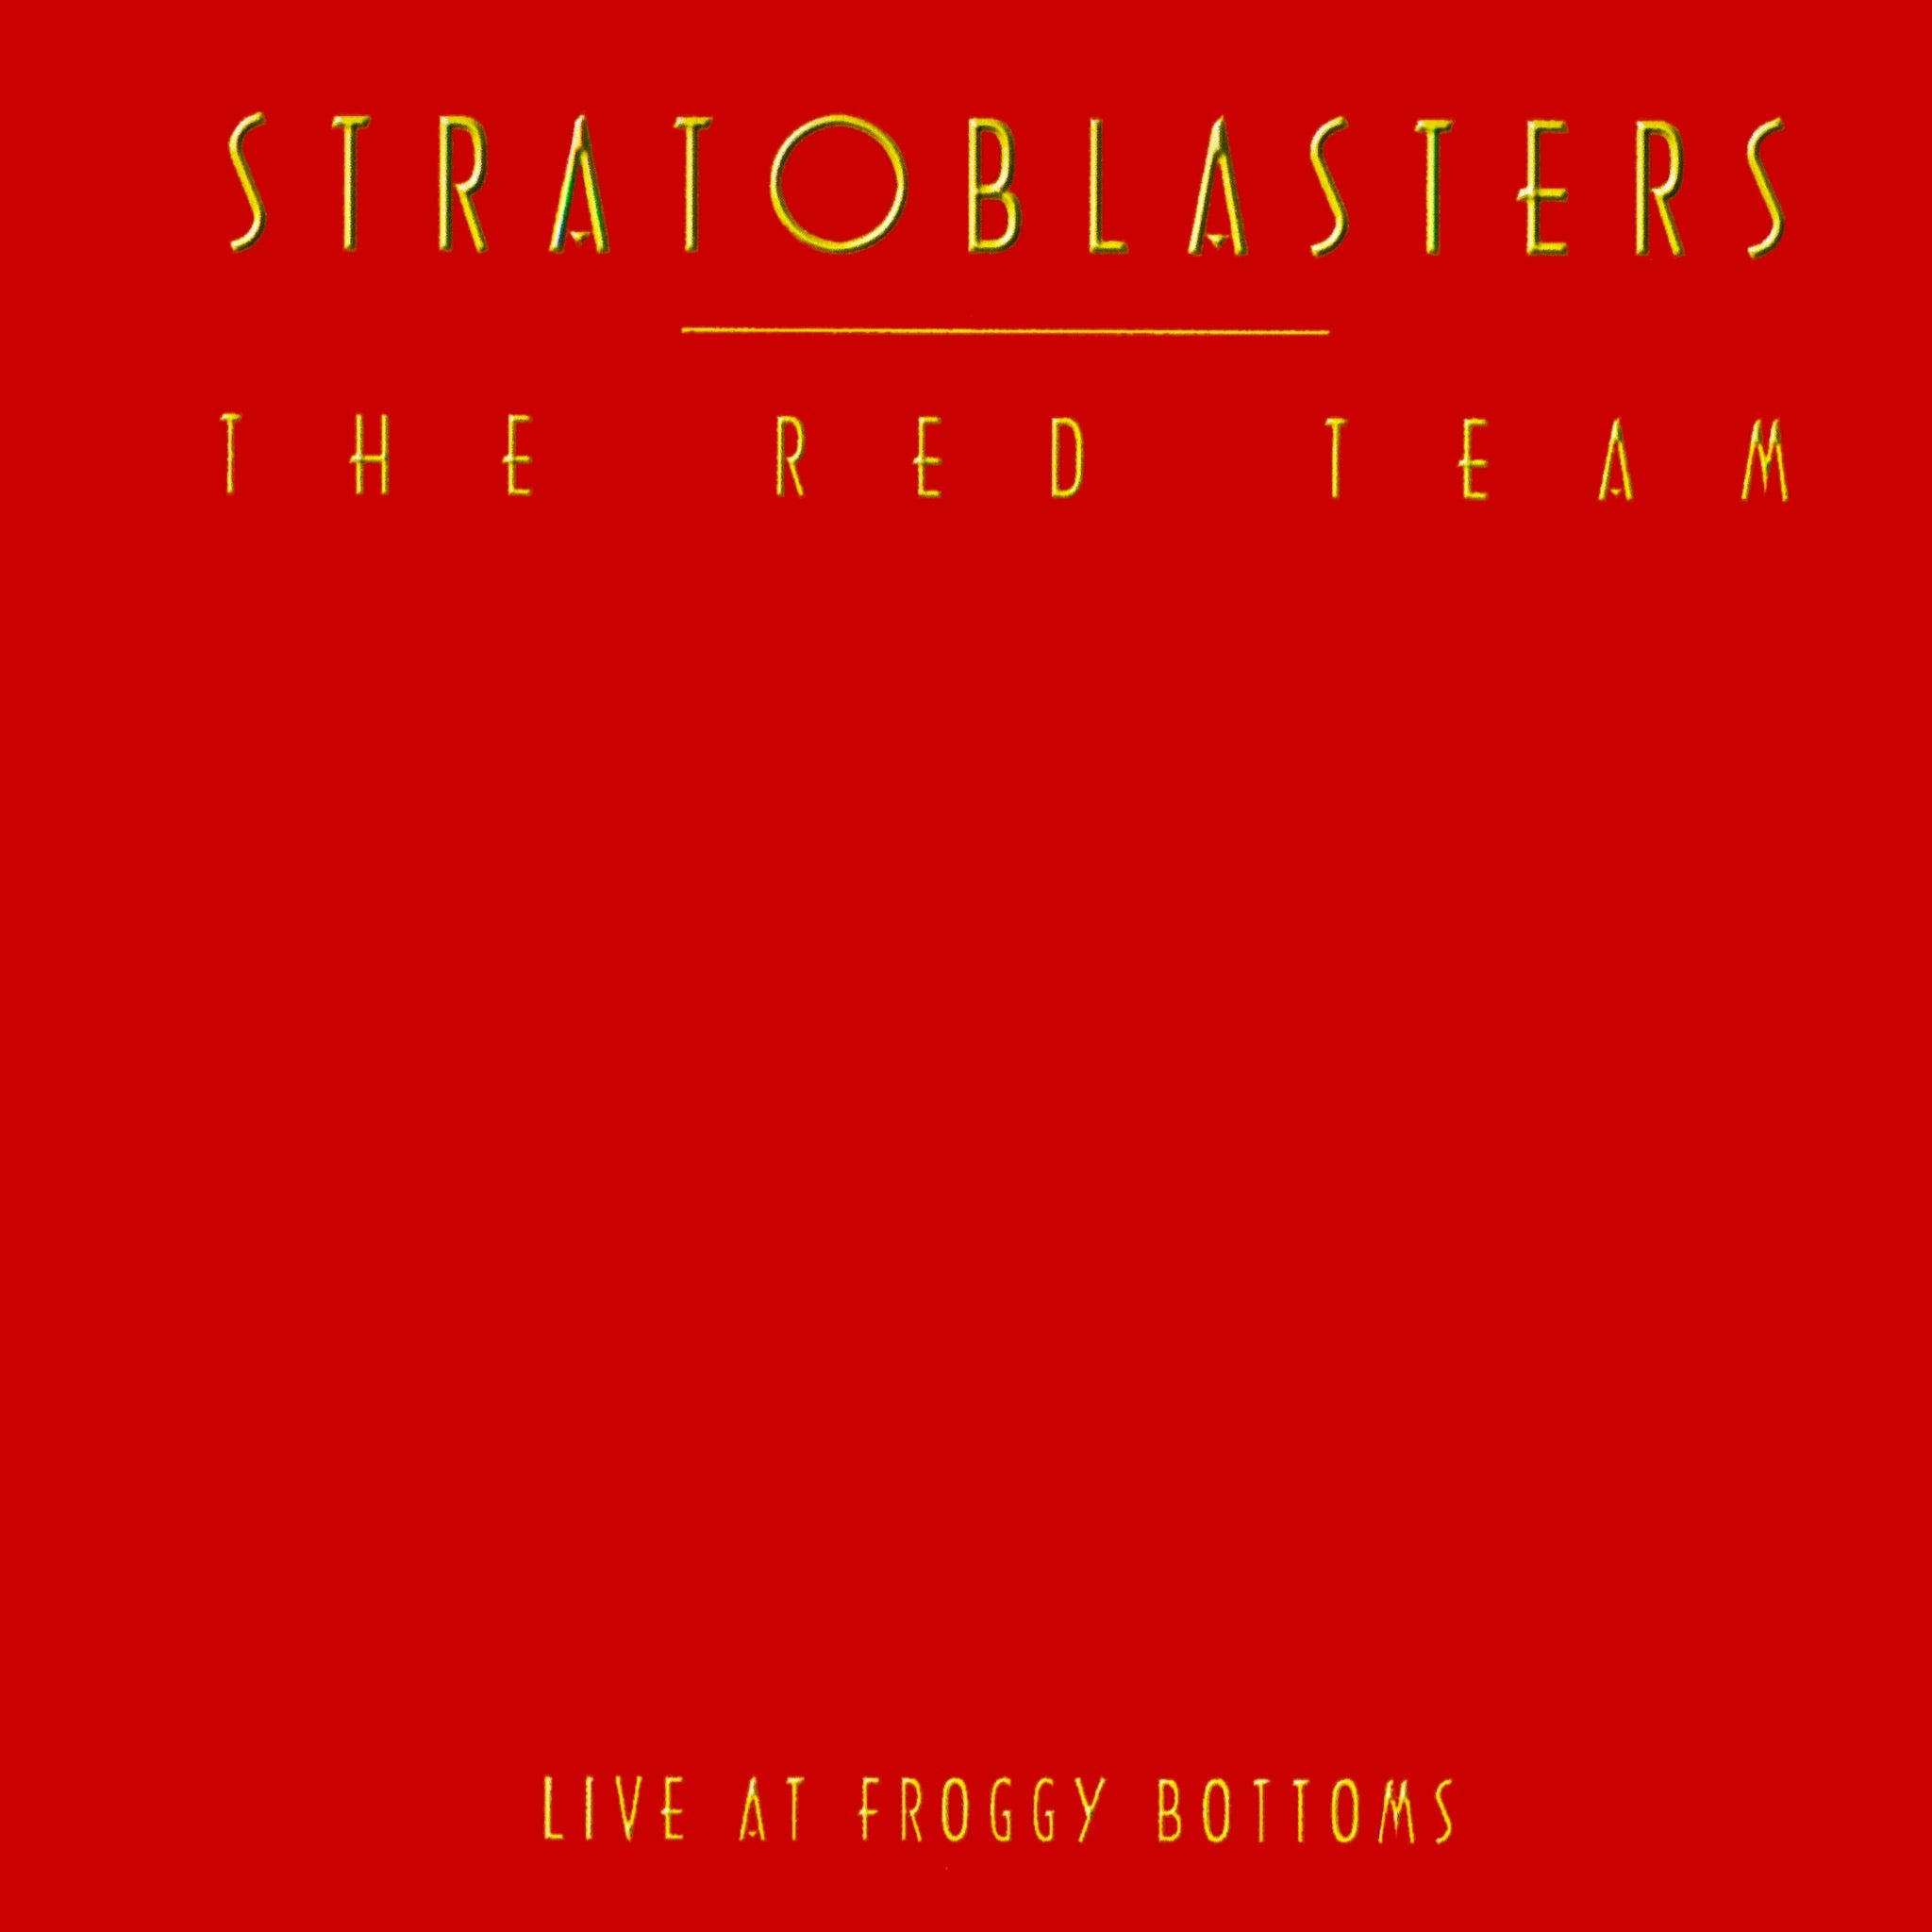 Stratoblasters - The Red Team - Live at Froggy Bottoms